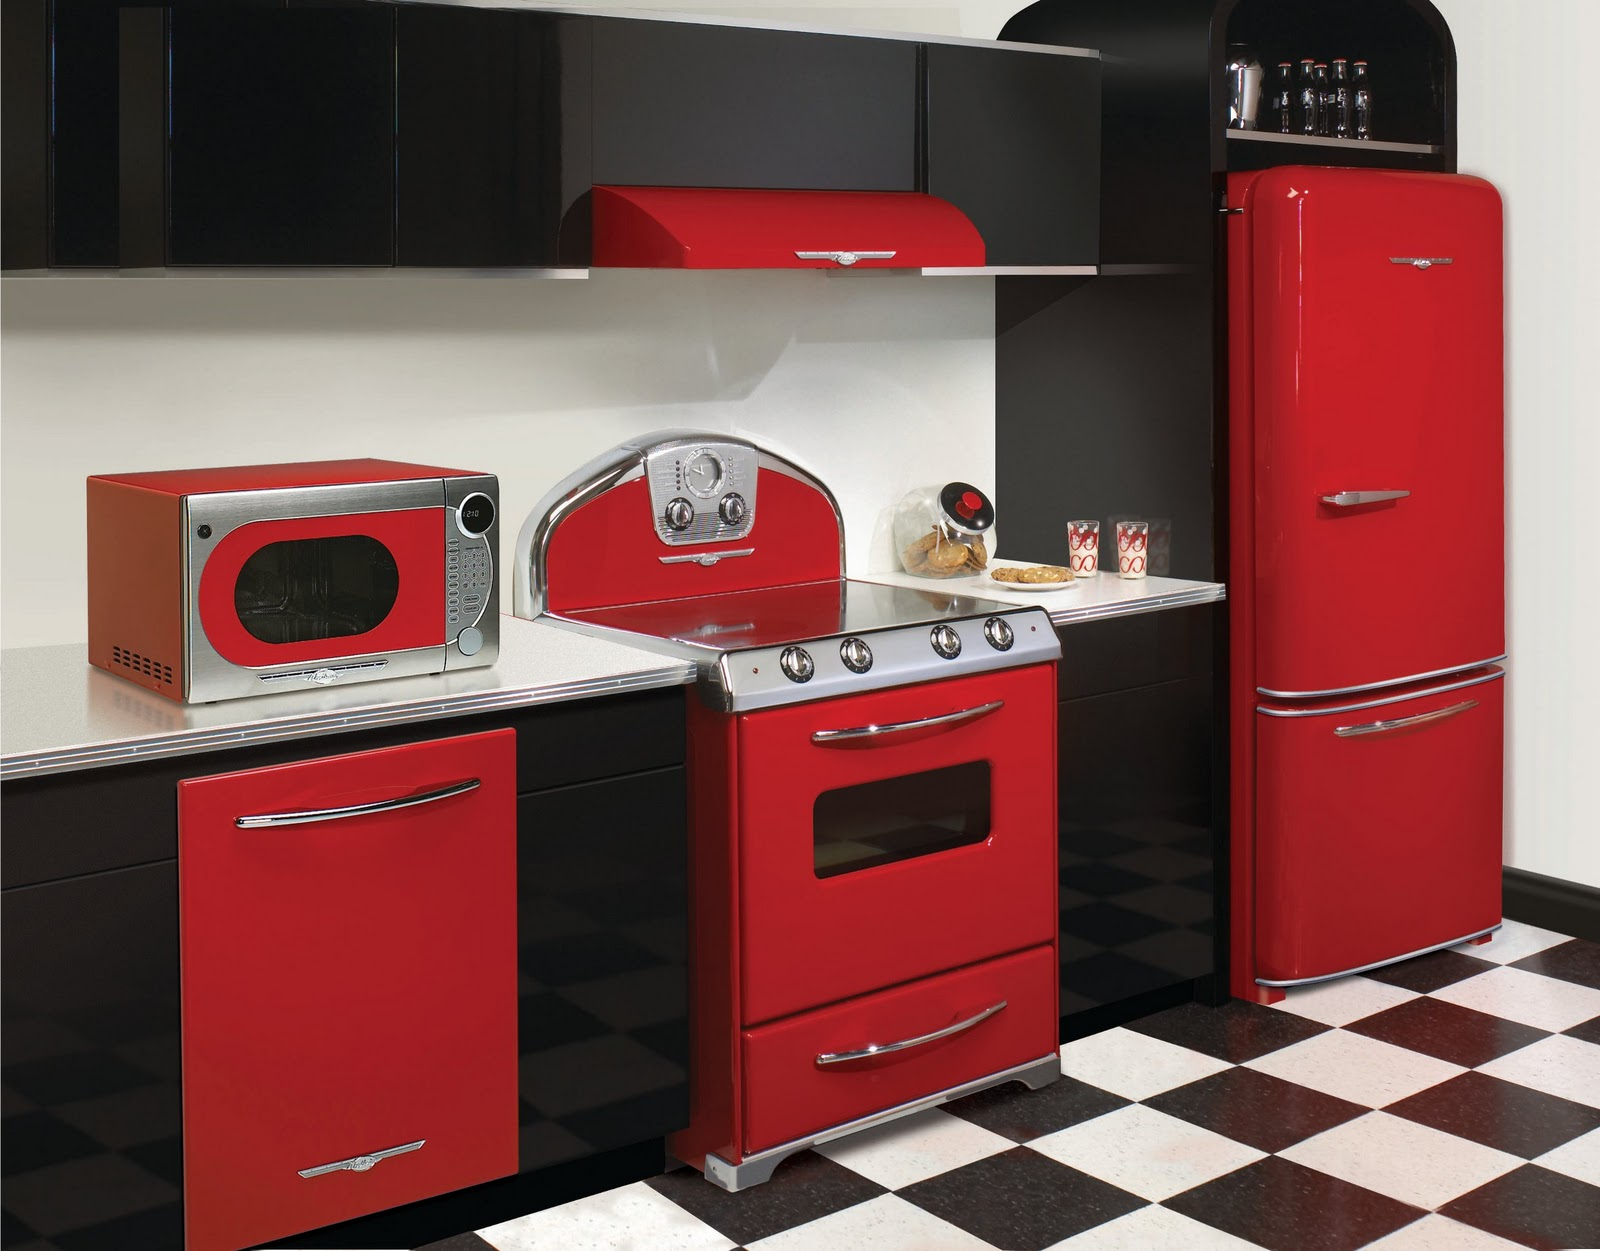 Red Vintage Kitchen Appliances